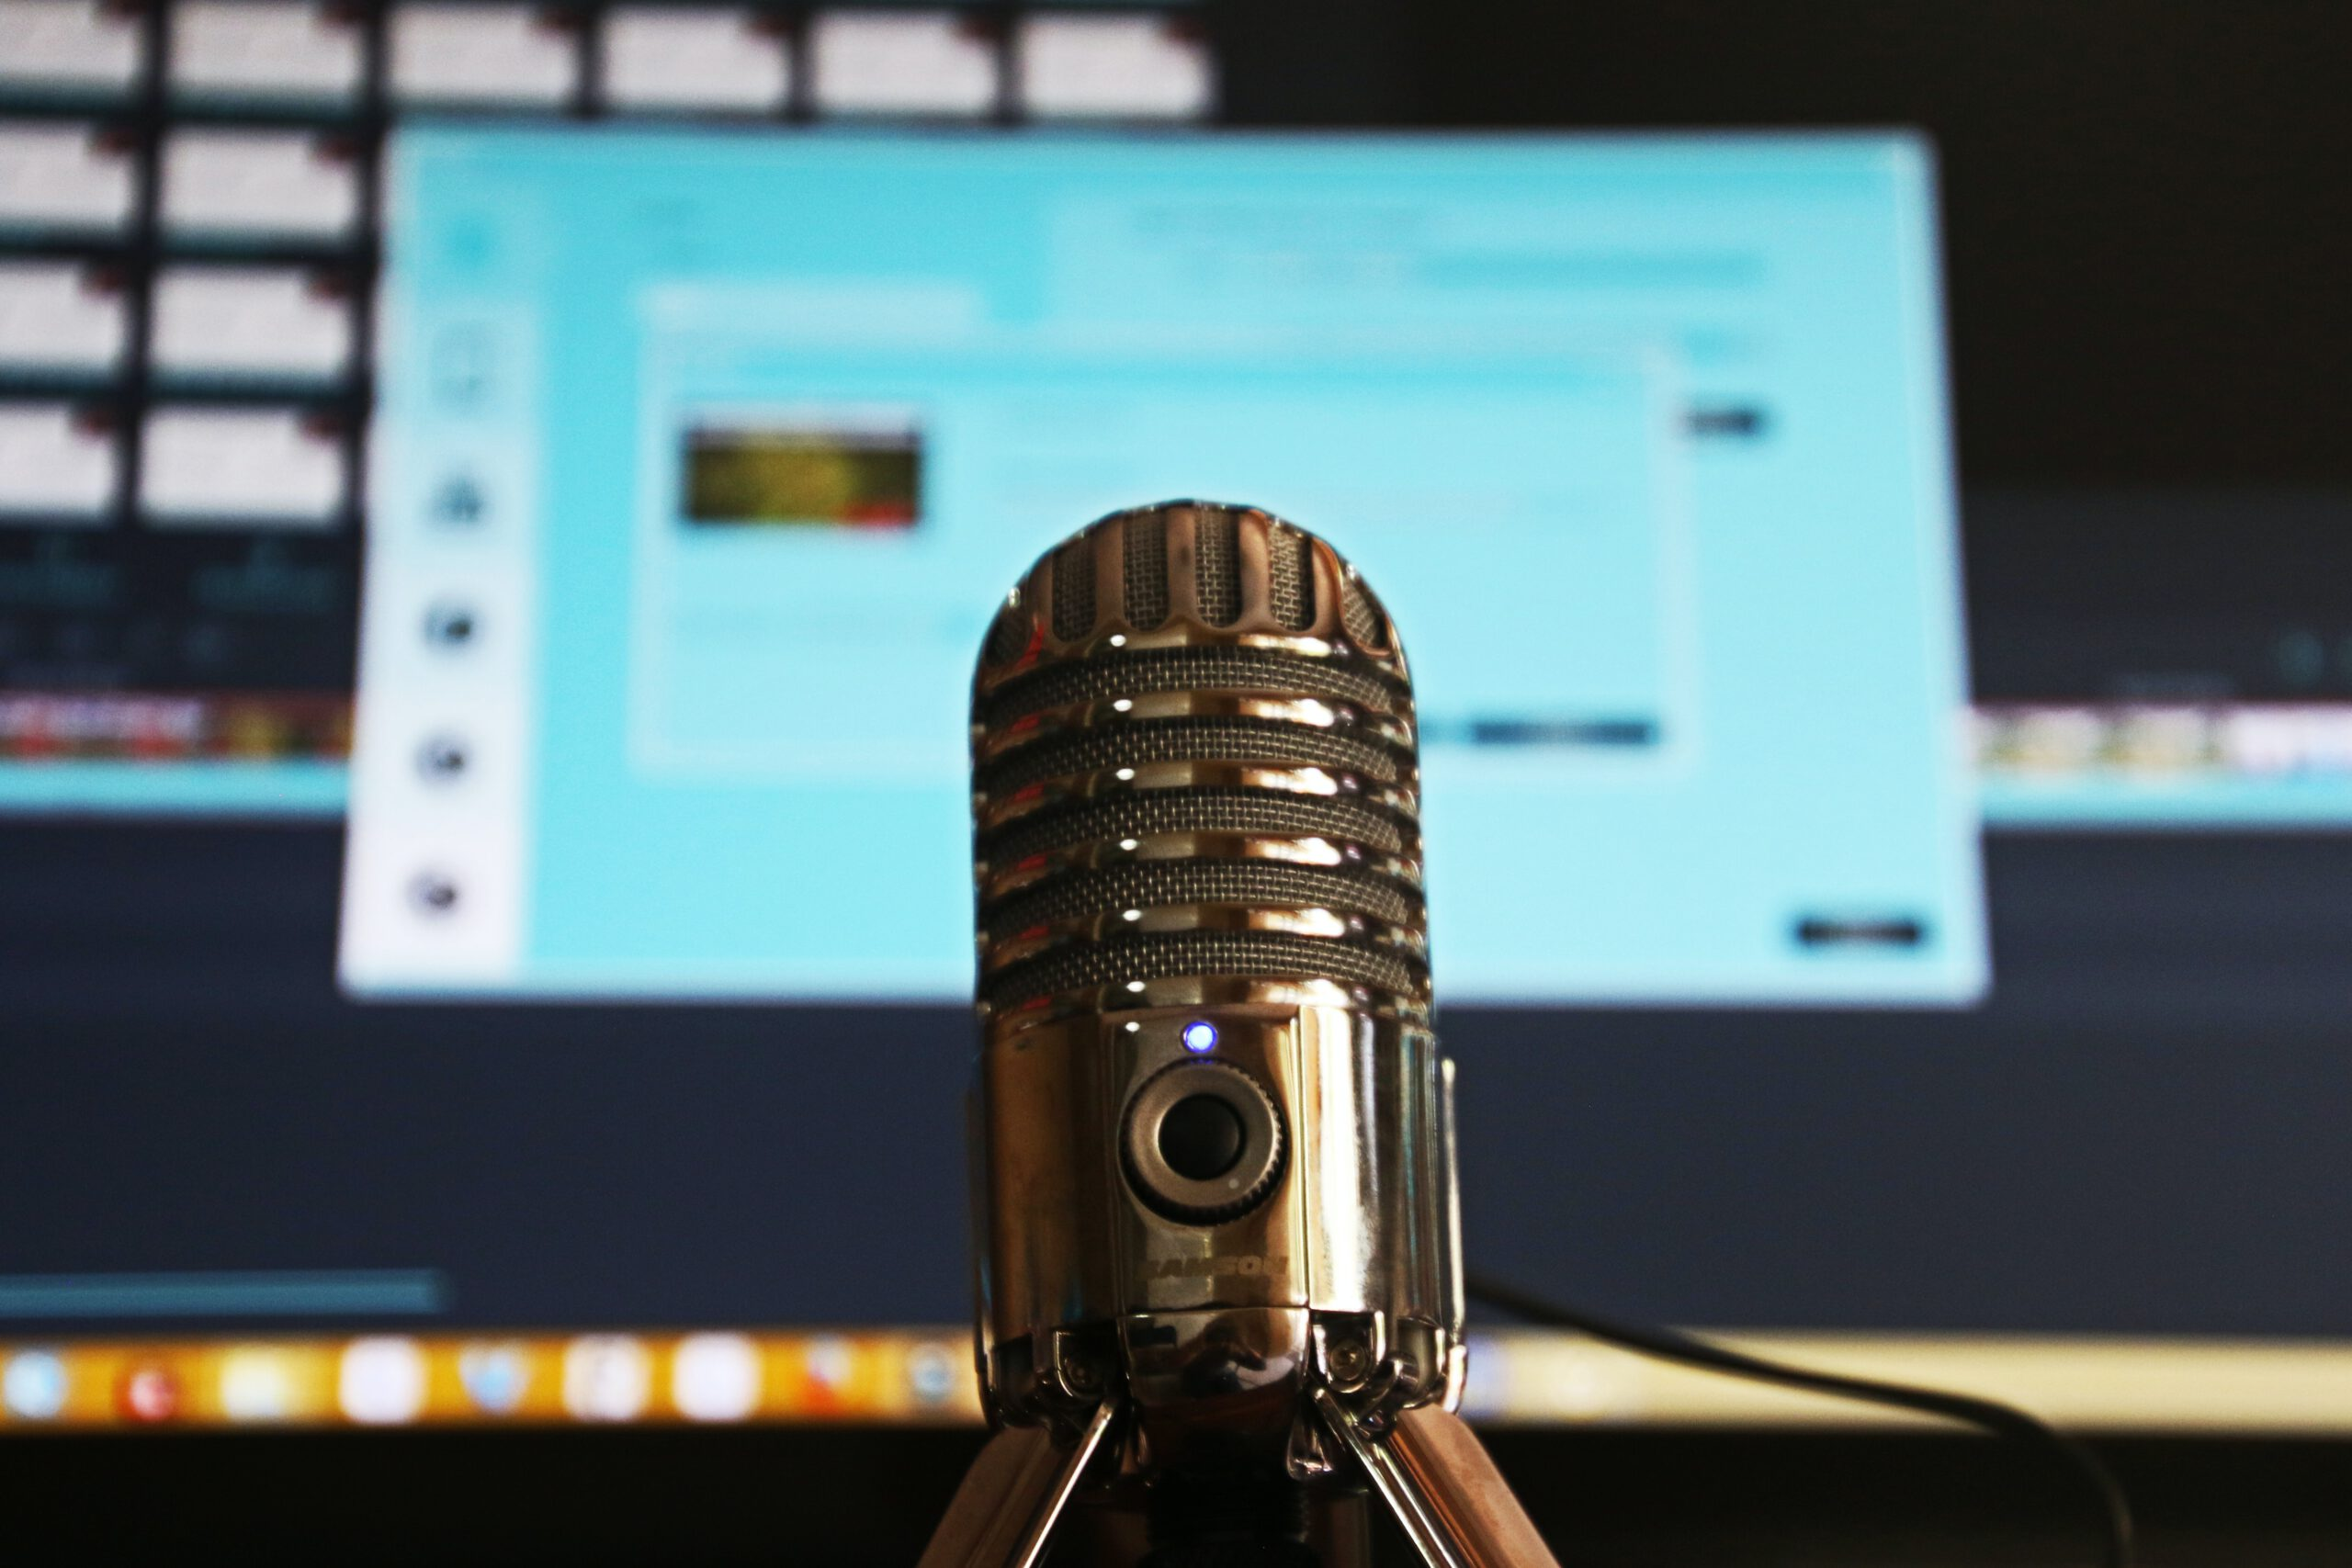 How to Fix Microphone Keeps Muting Itself on Windows 10